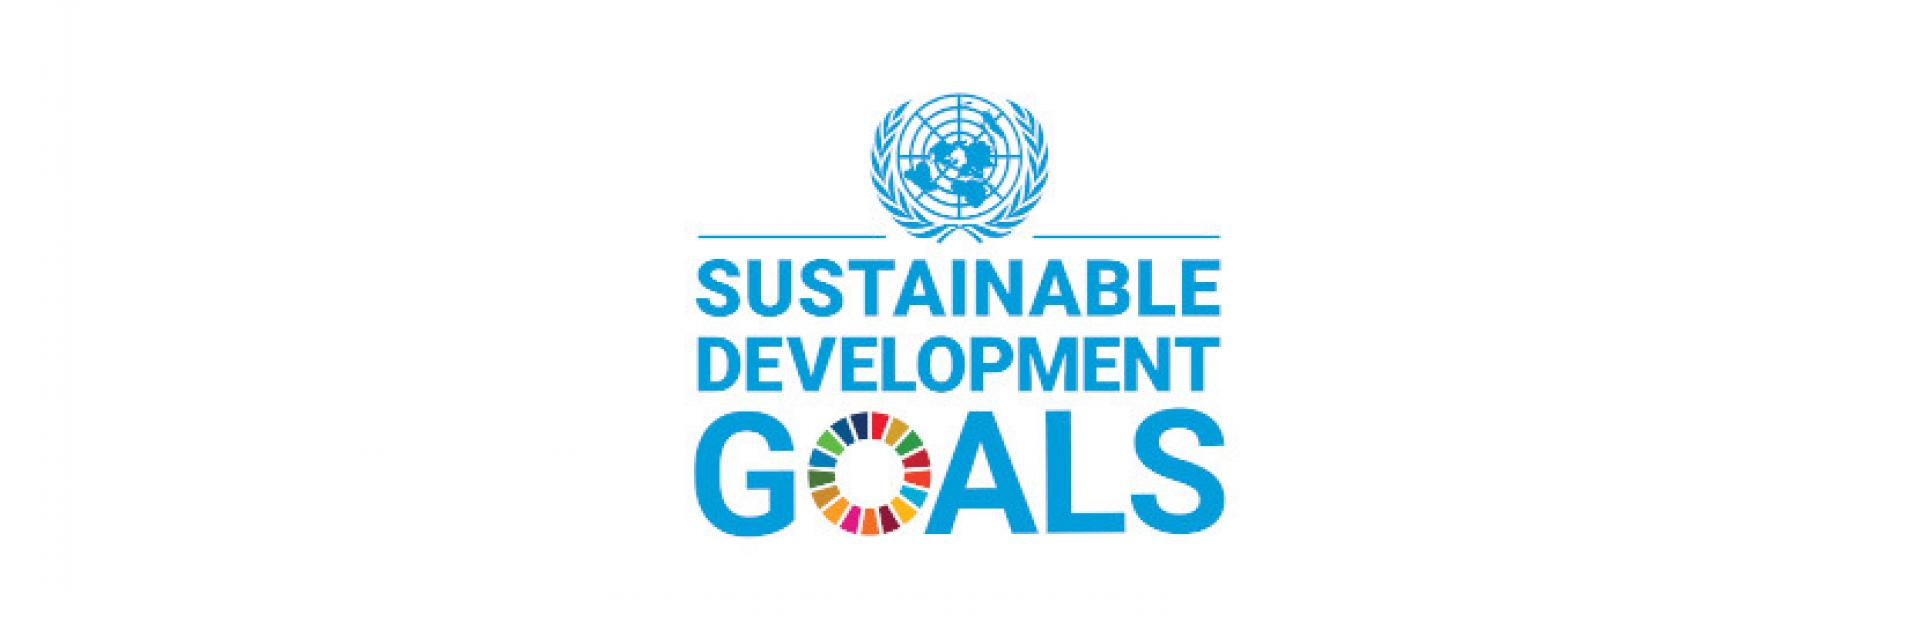 Sixth session of the Africa Regional Forum on Sustainable Development